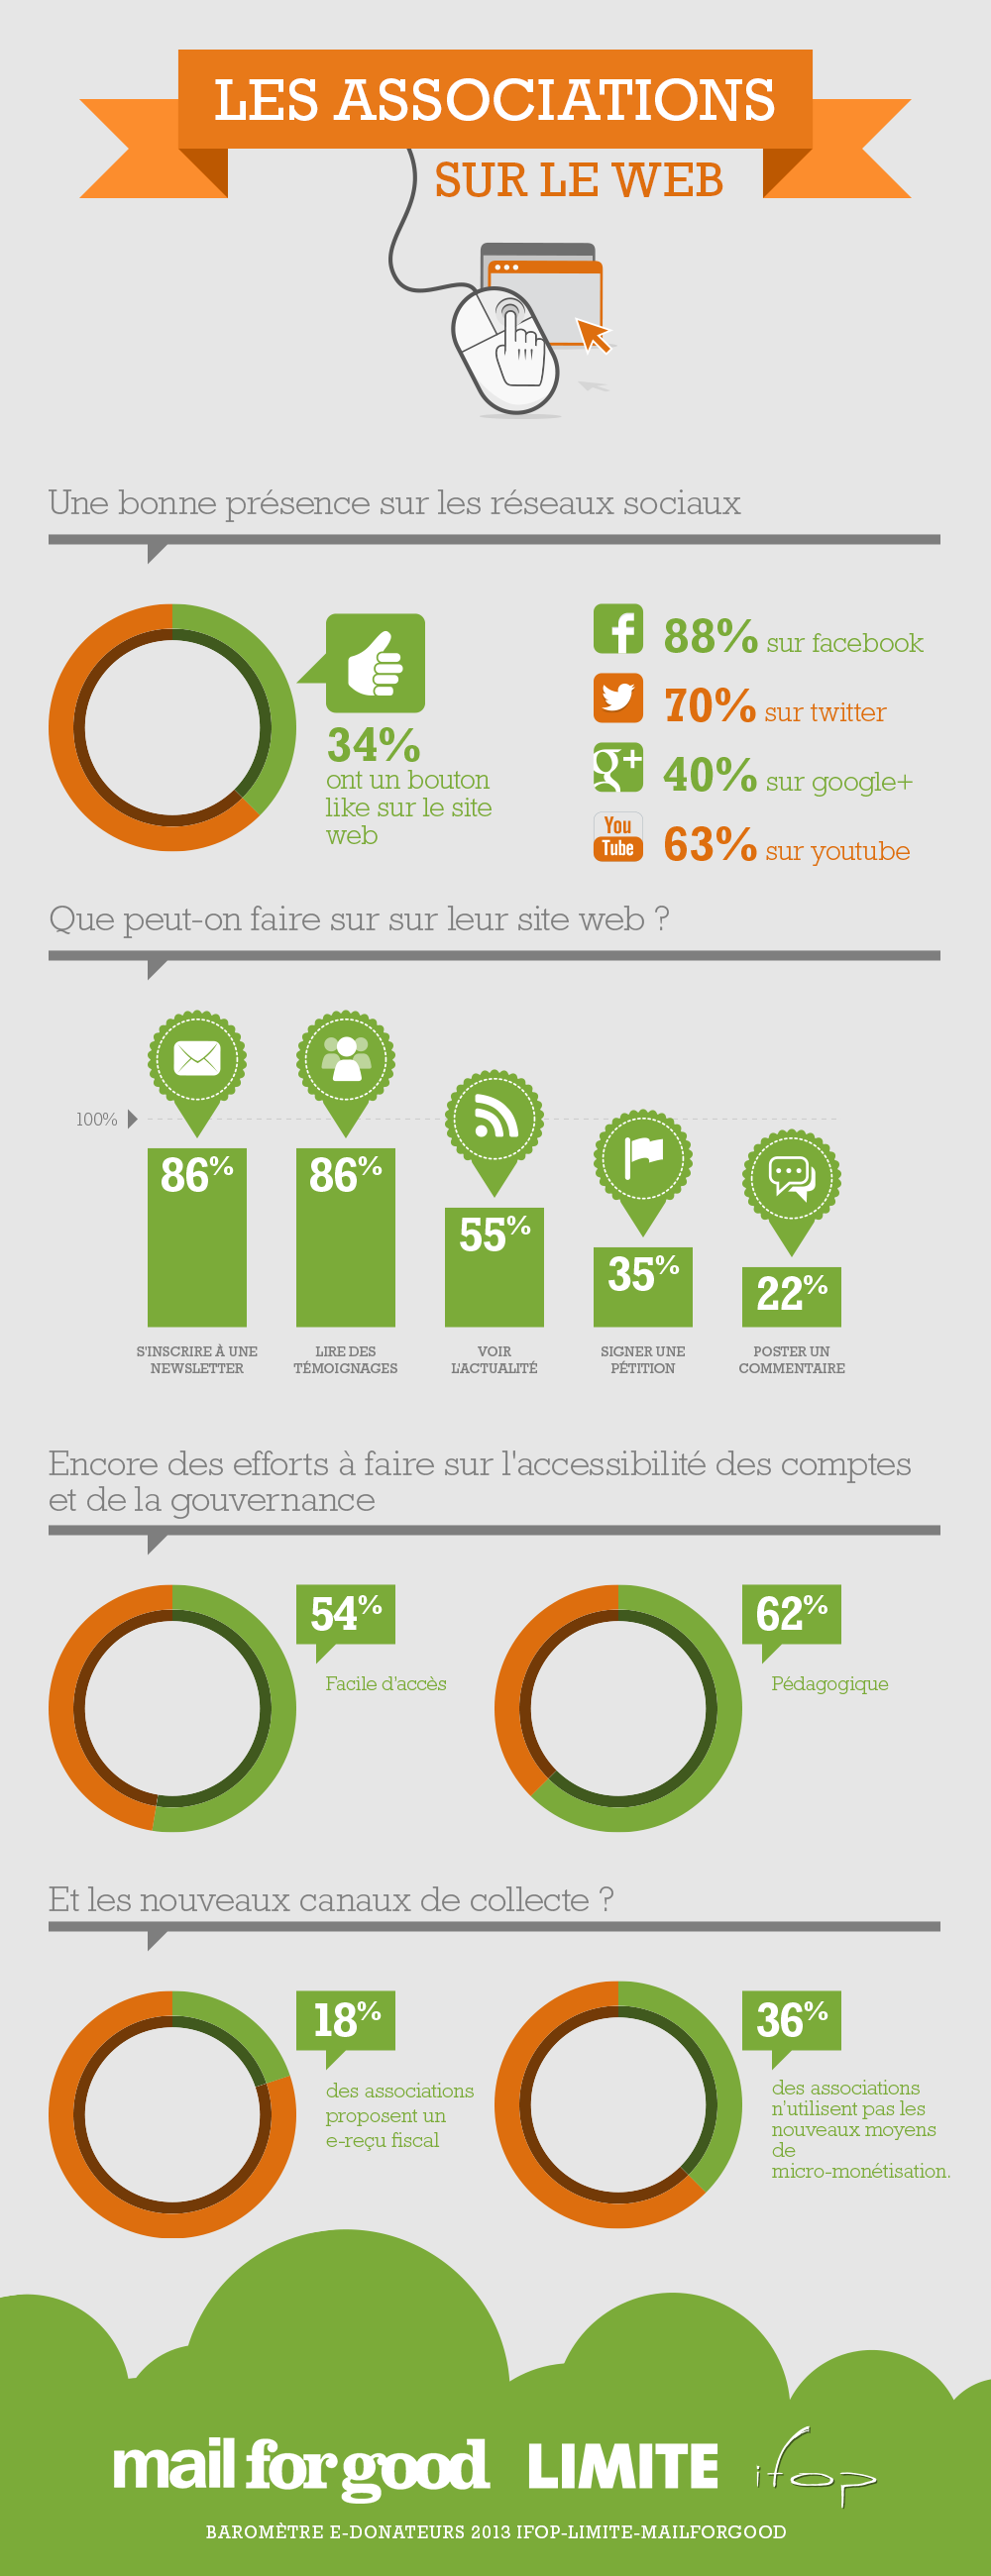 Infographie-Associations-Web-MailForGood-LIMITE